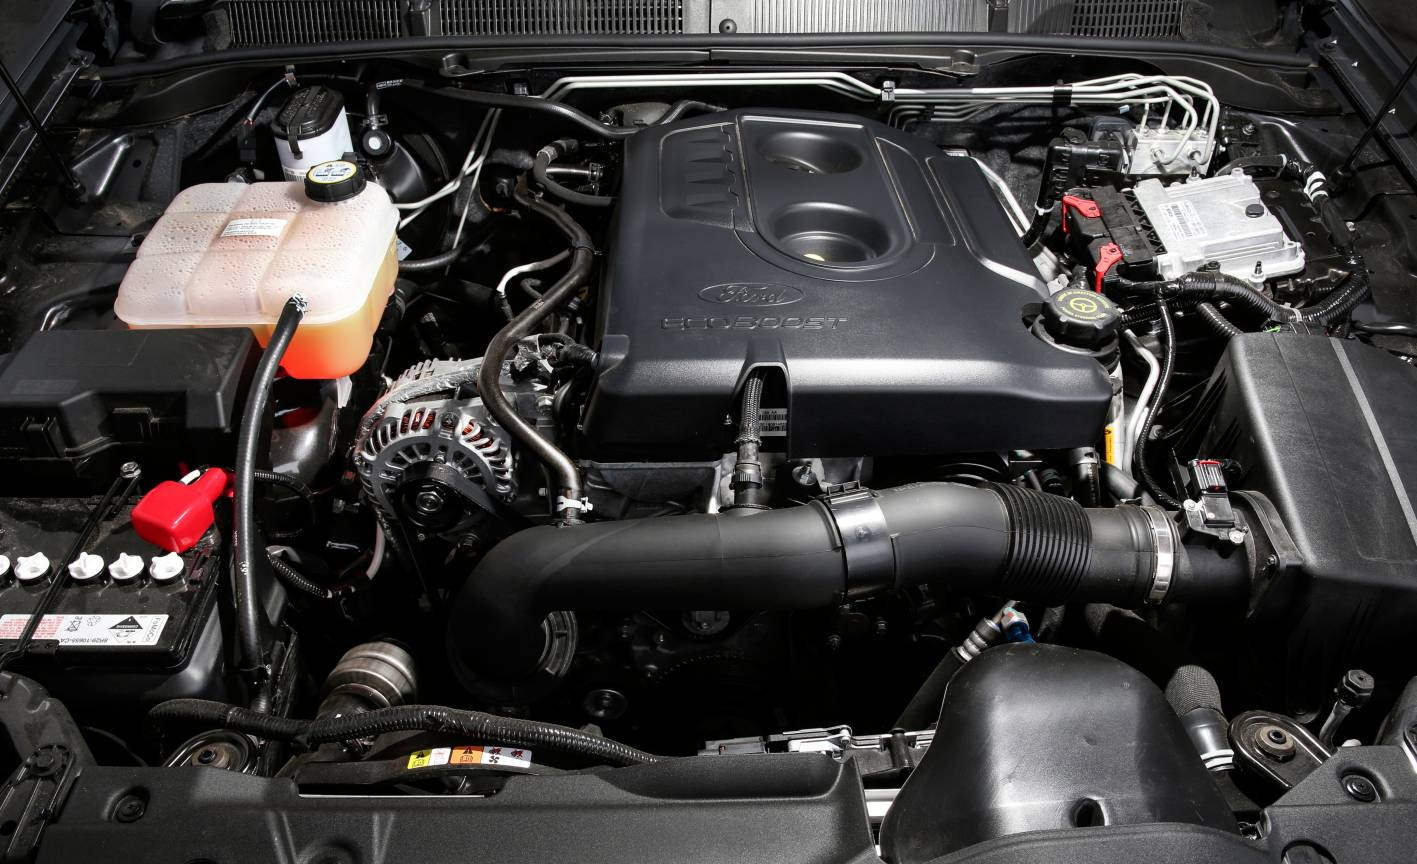 Top 10 engine conversion ideas for production cars | PerformanceDrive